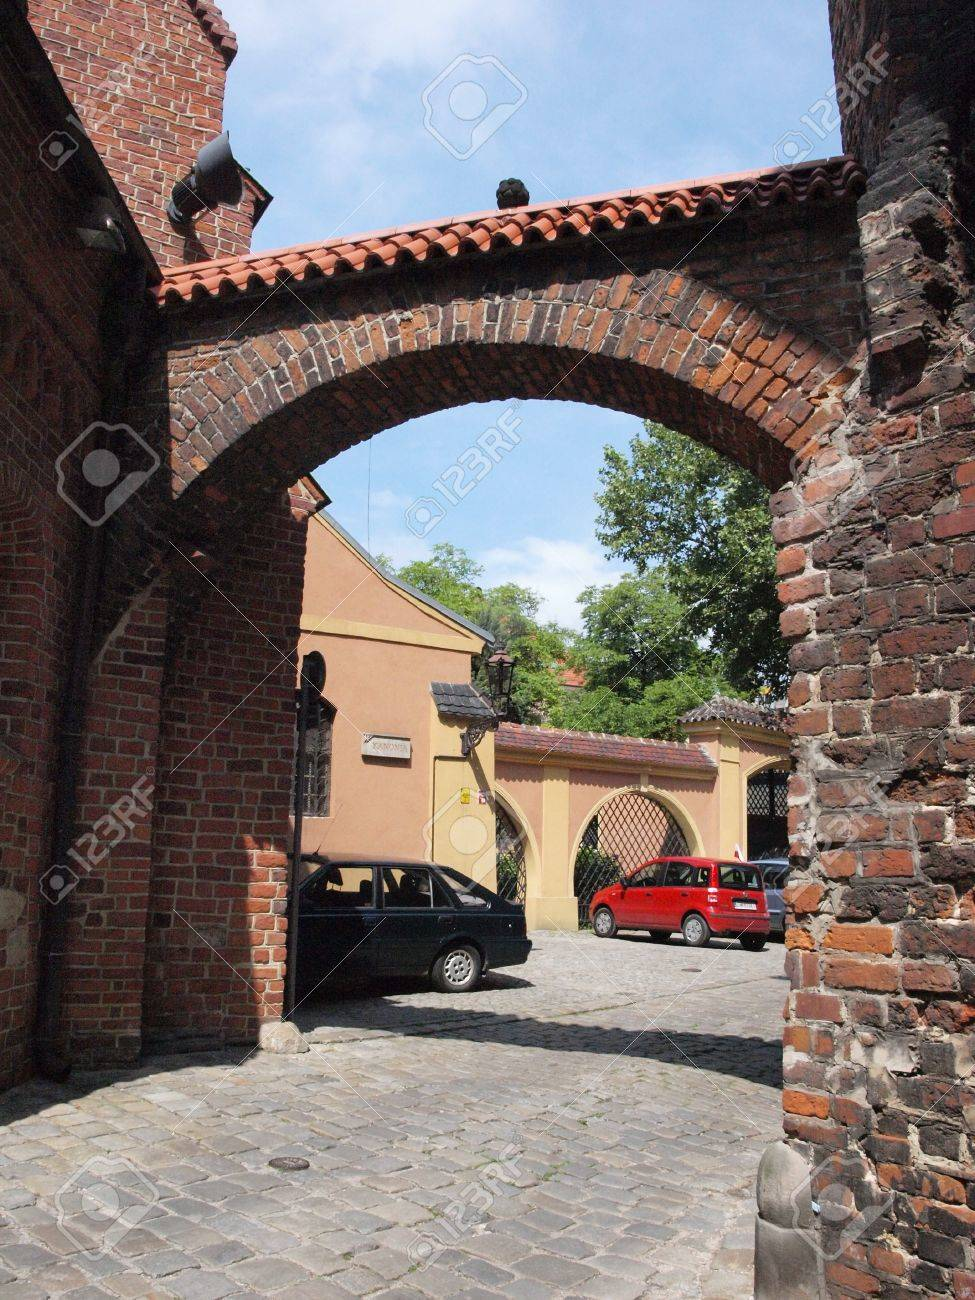 So called Noodle Gate, Wroclaw, Poland Stock Photo - 15619628